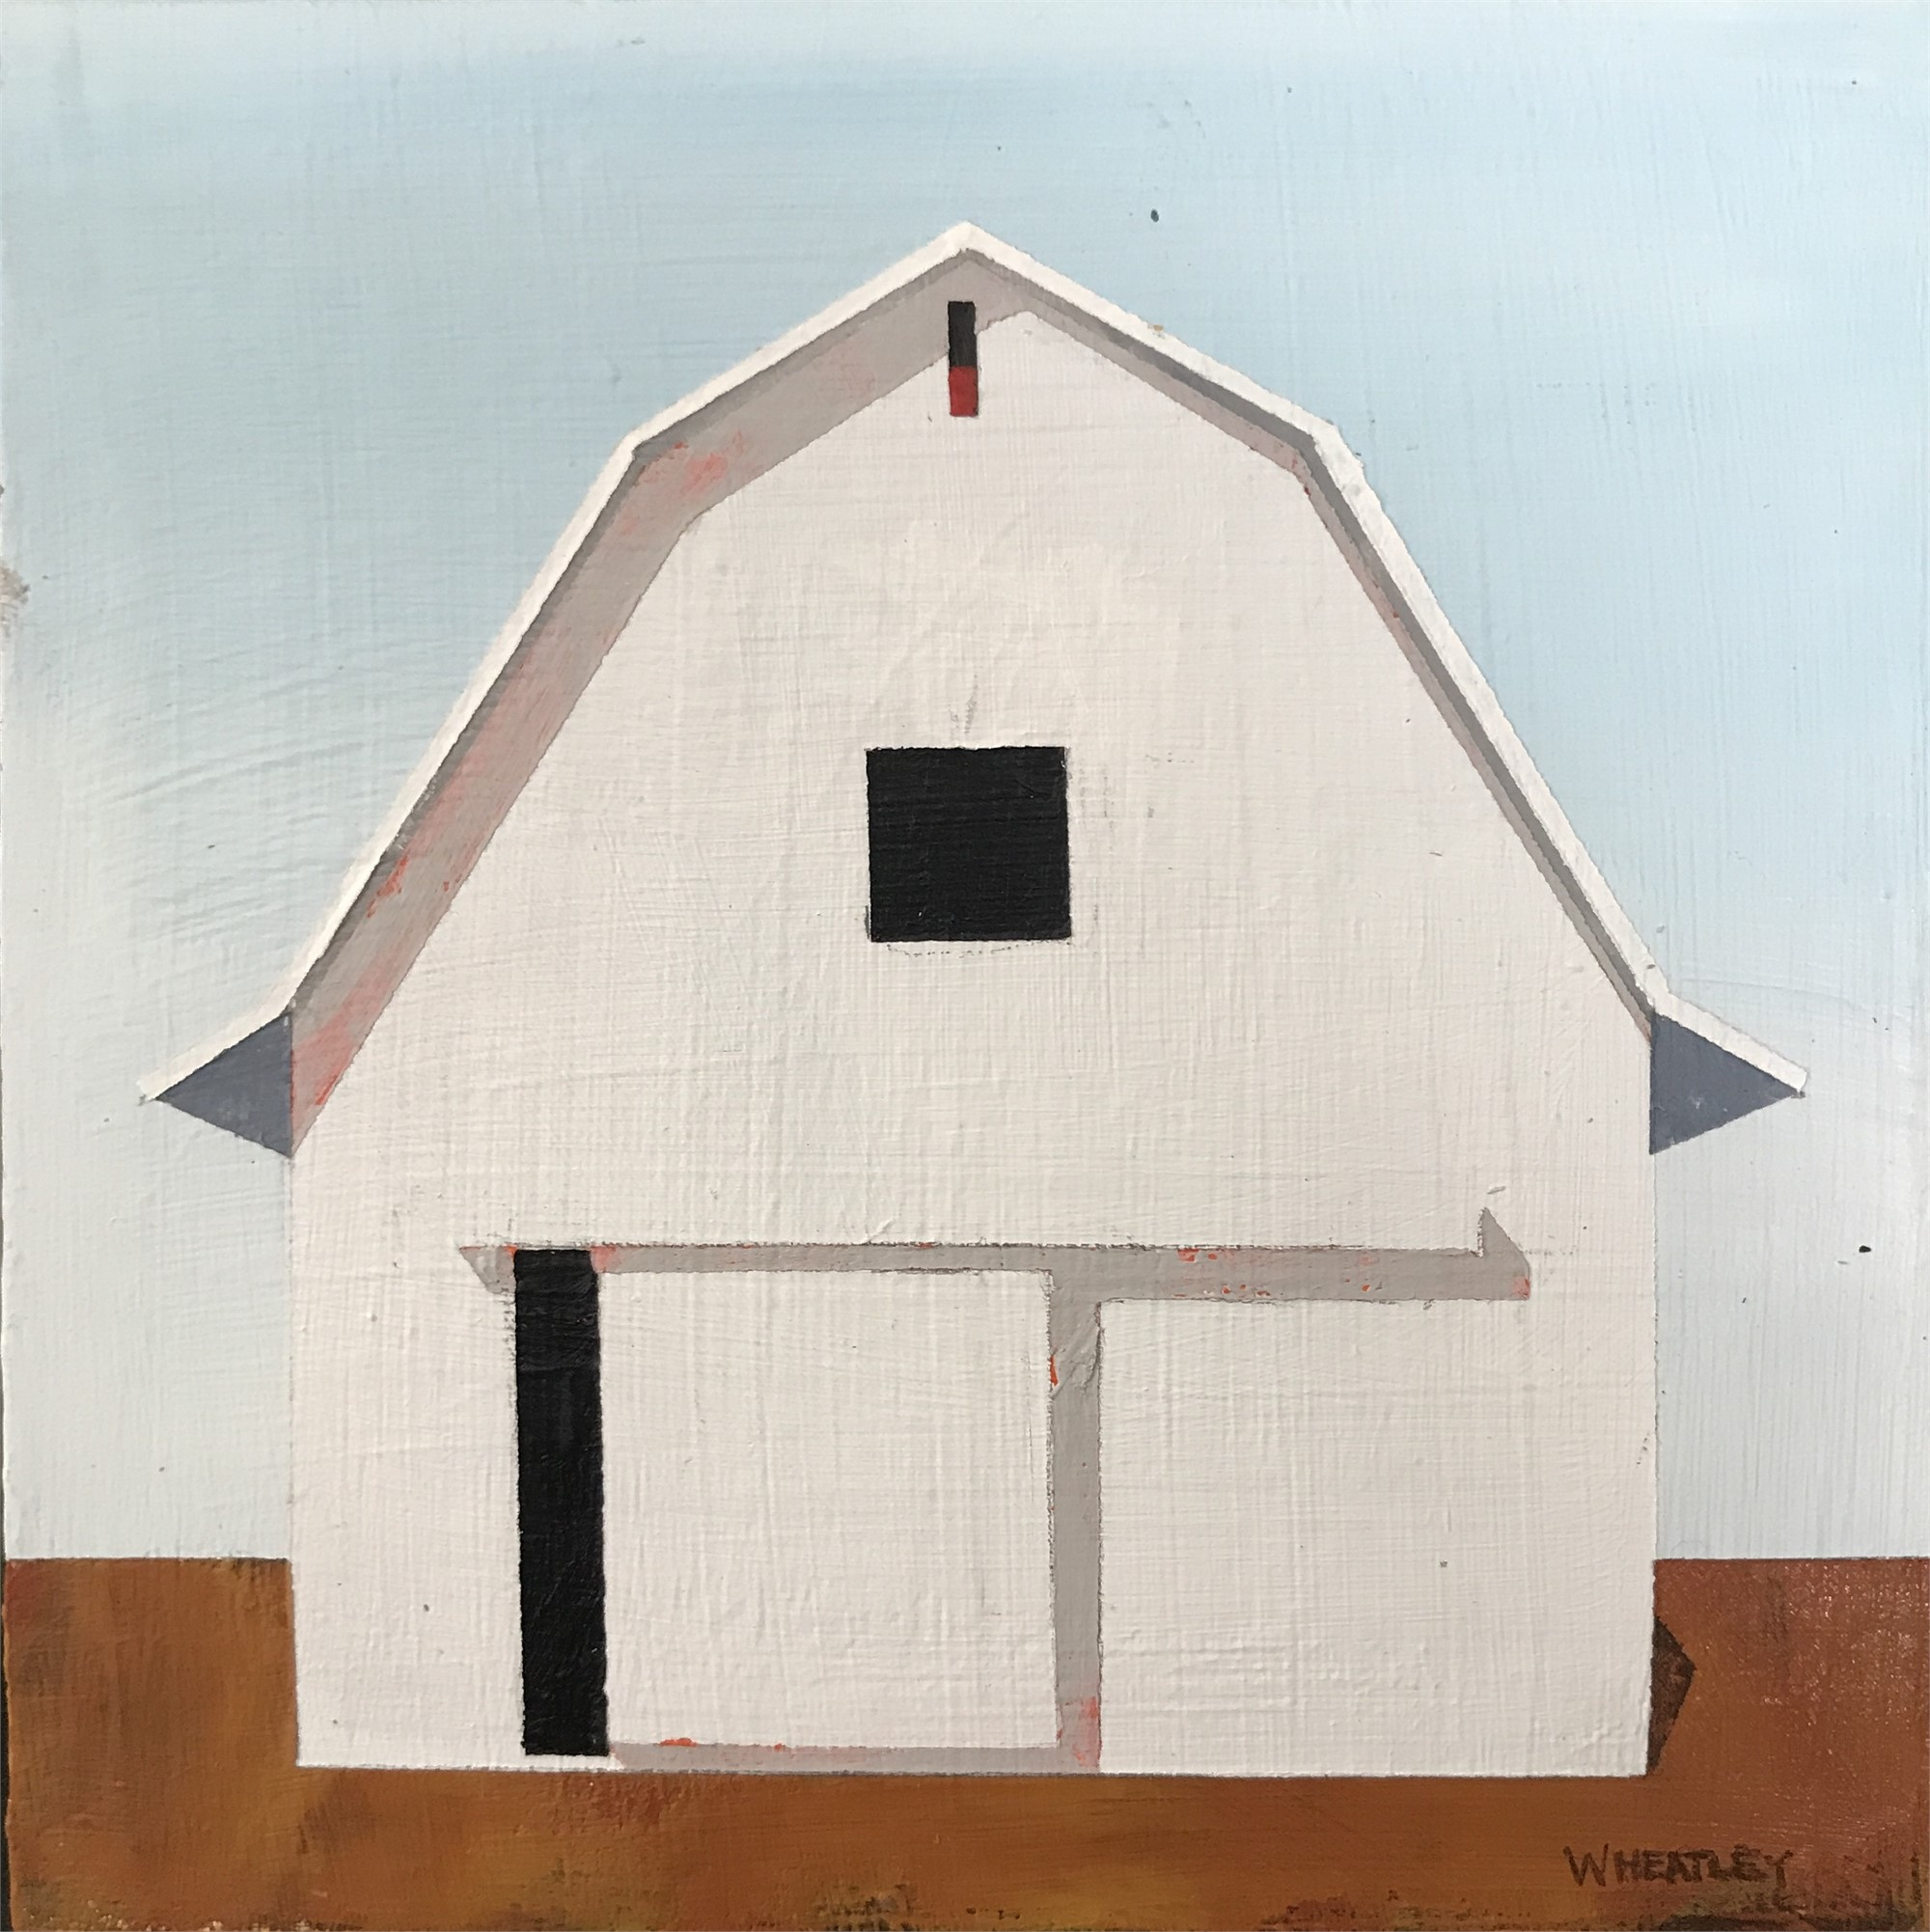 White Barn II by Justin Wheatley